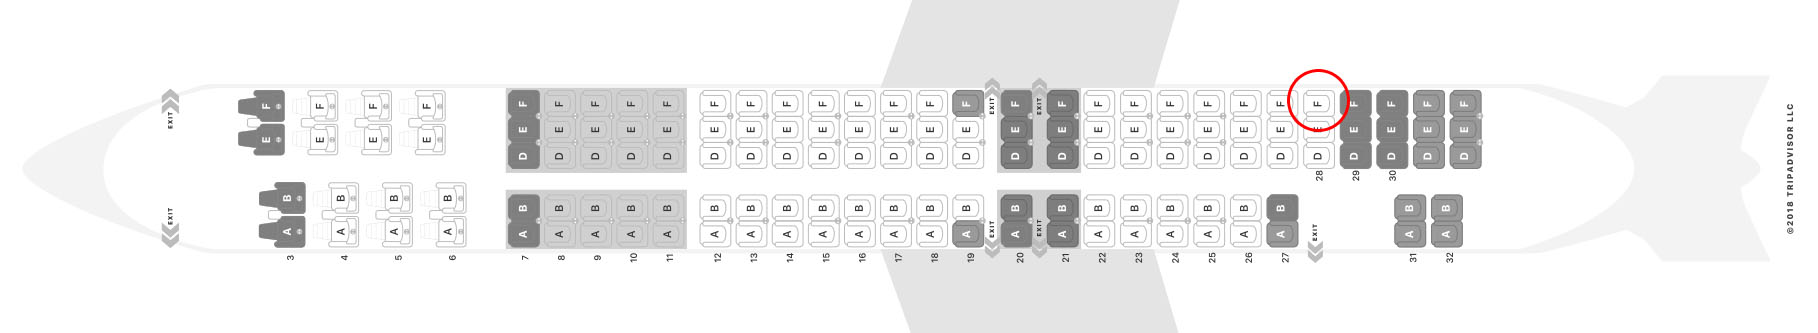 American Airlines MD-83 seat map